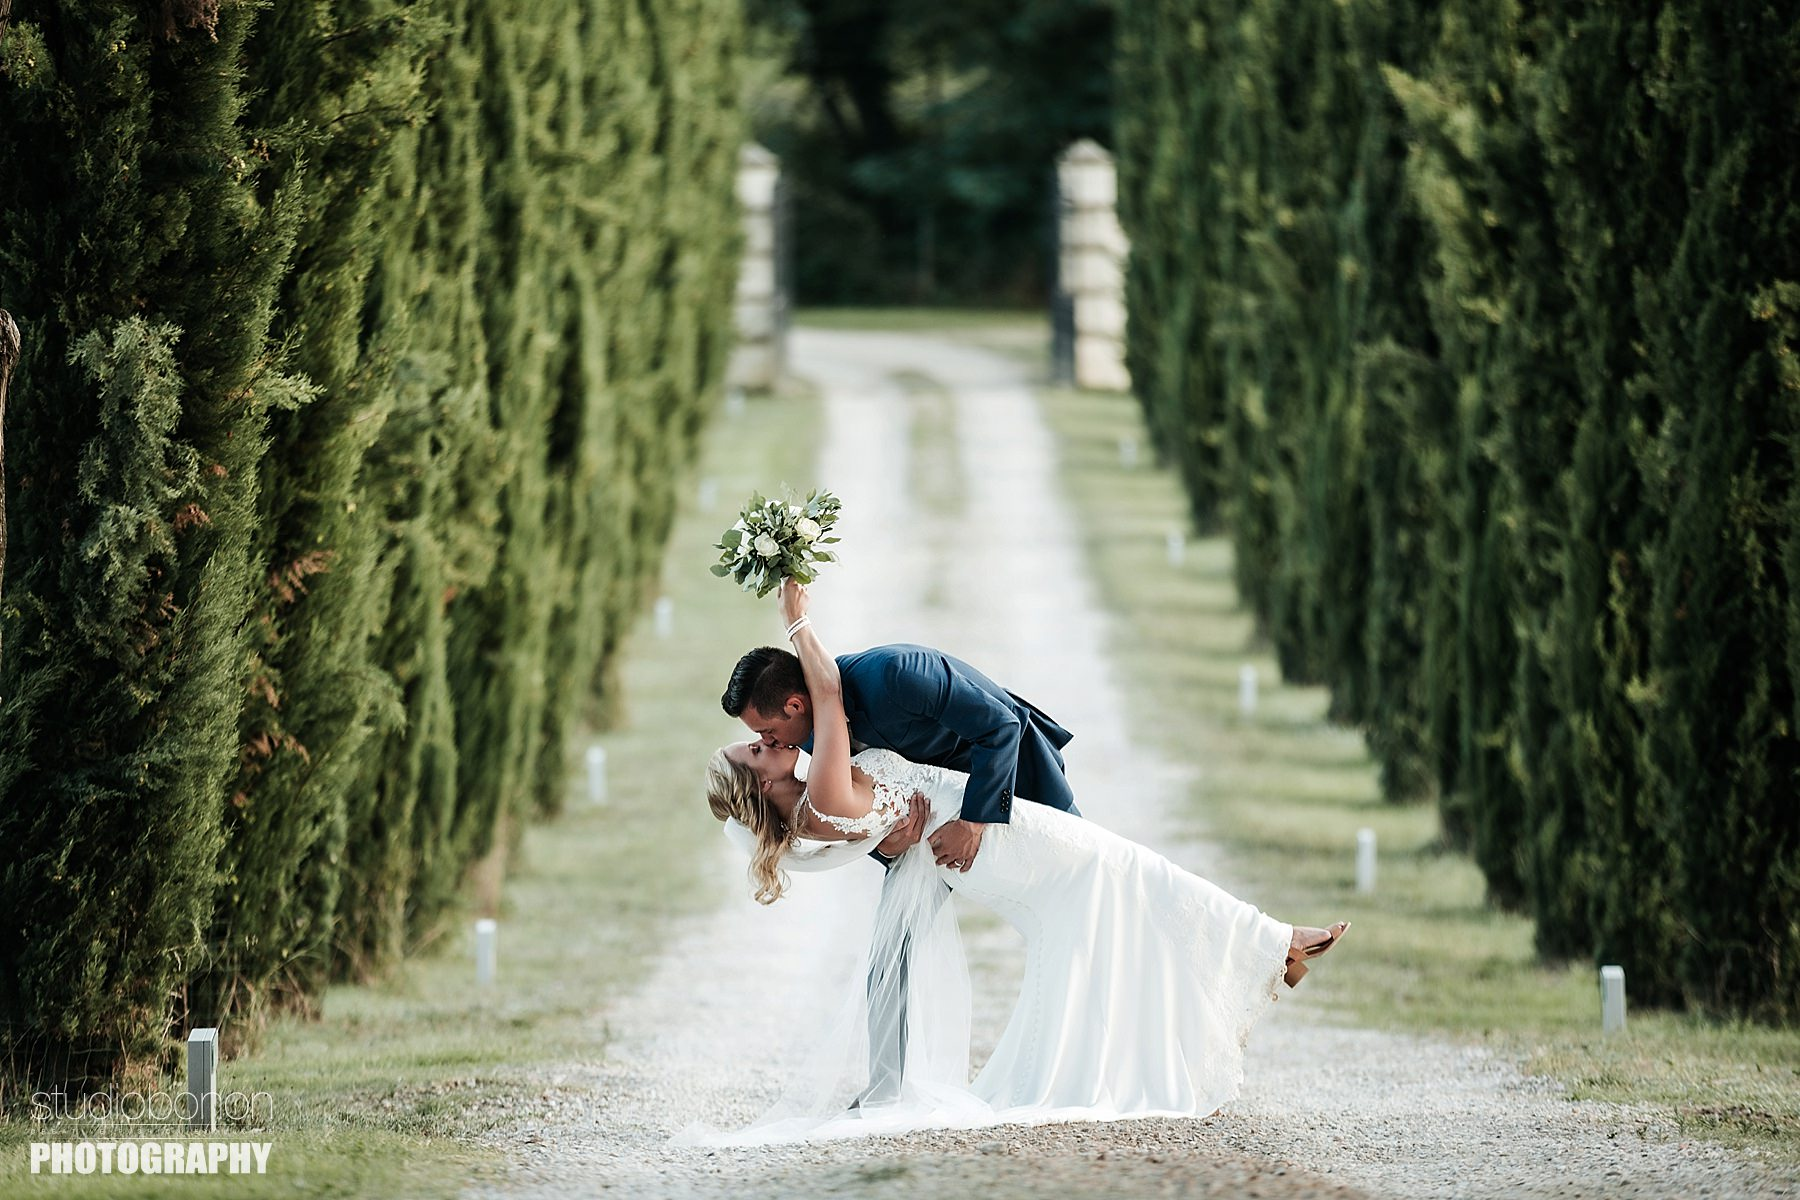 Country Wedding in Tuscany countryside at Tenuta Canto alla Moraia. Photo by the wedding photographers in Tuscany based Florence Studio Bonon Photography.